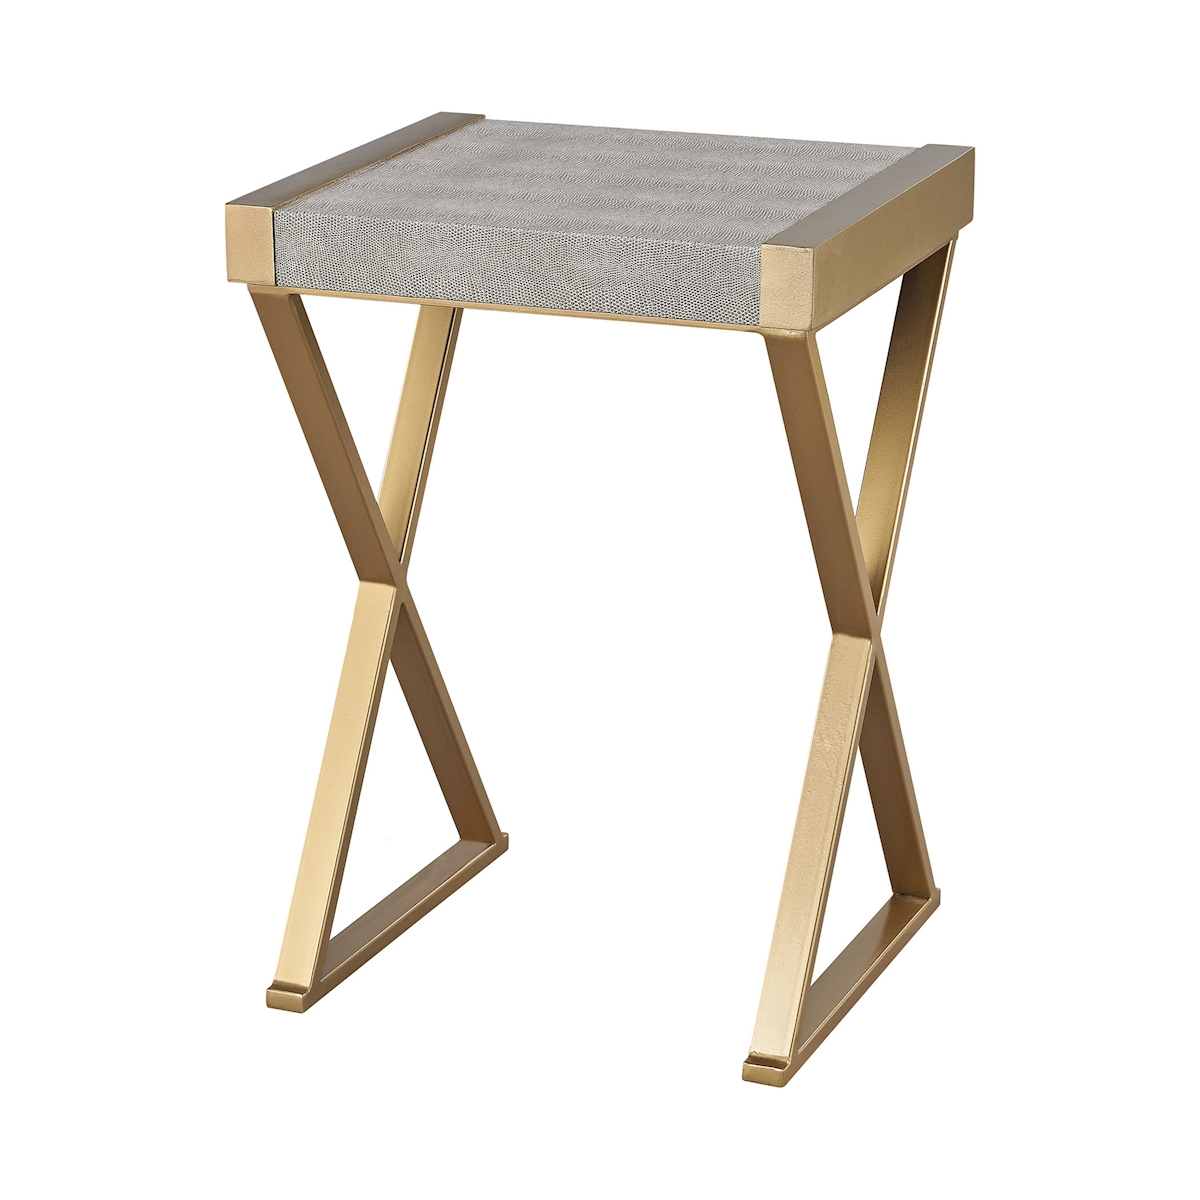 Sands Point Accent Table in Grey and Gold | Elk Home